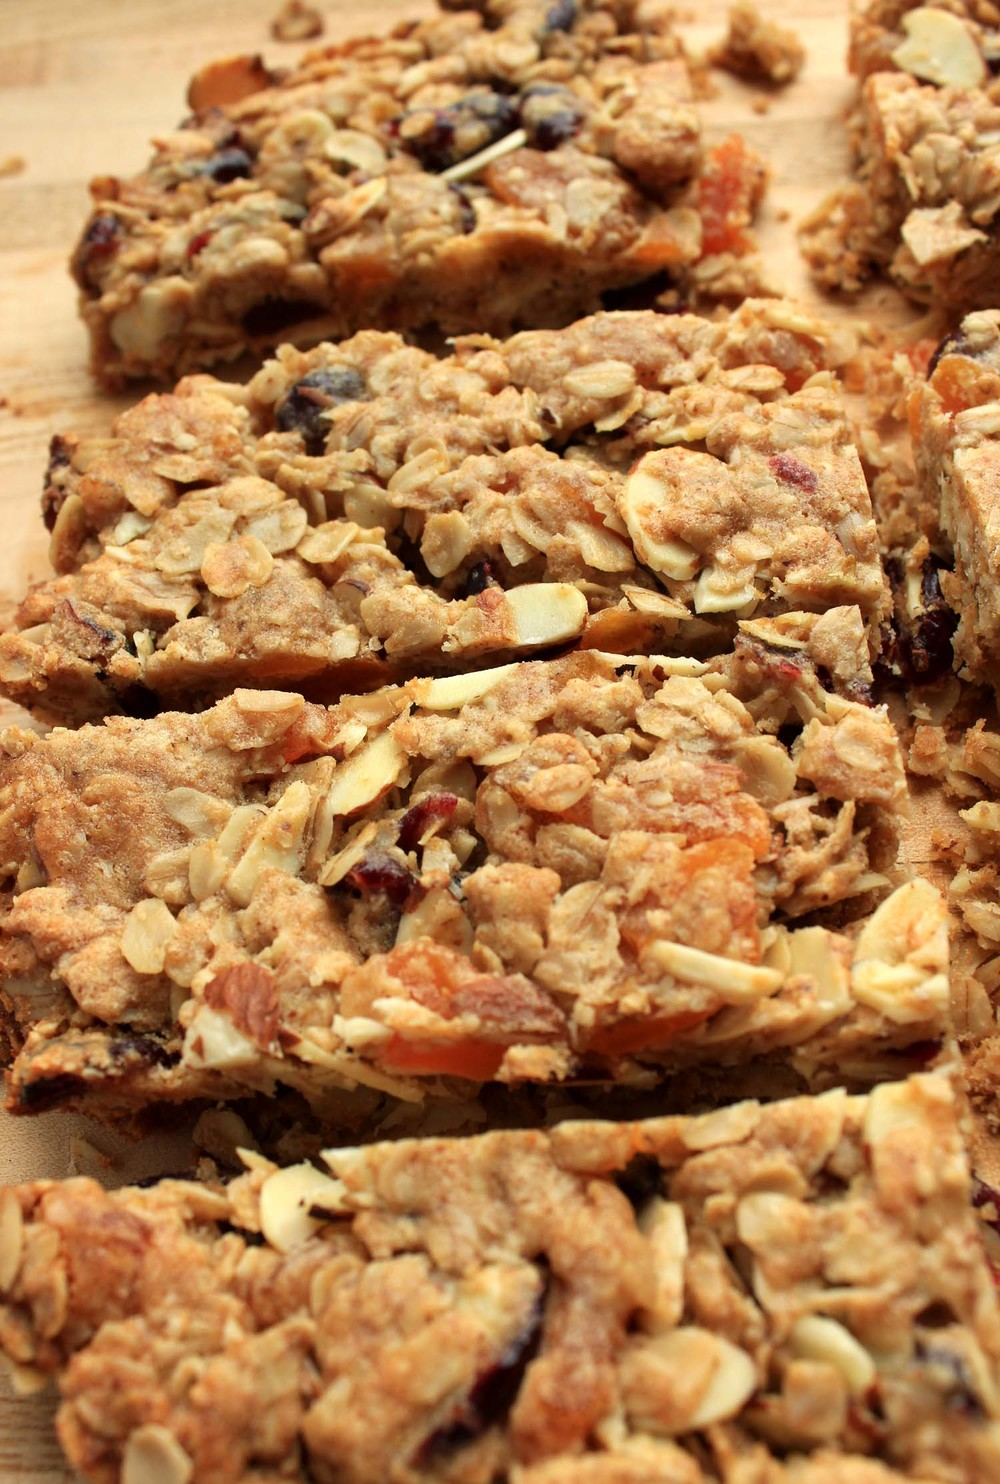 Cranberry Apricot Almond Granola Bars  | Image:  Laura Messersmith